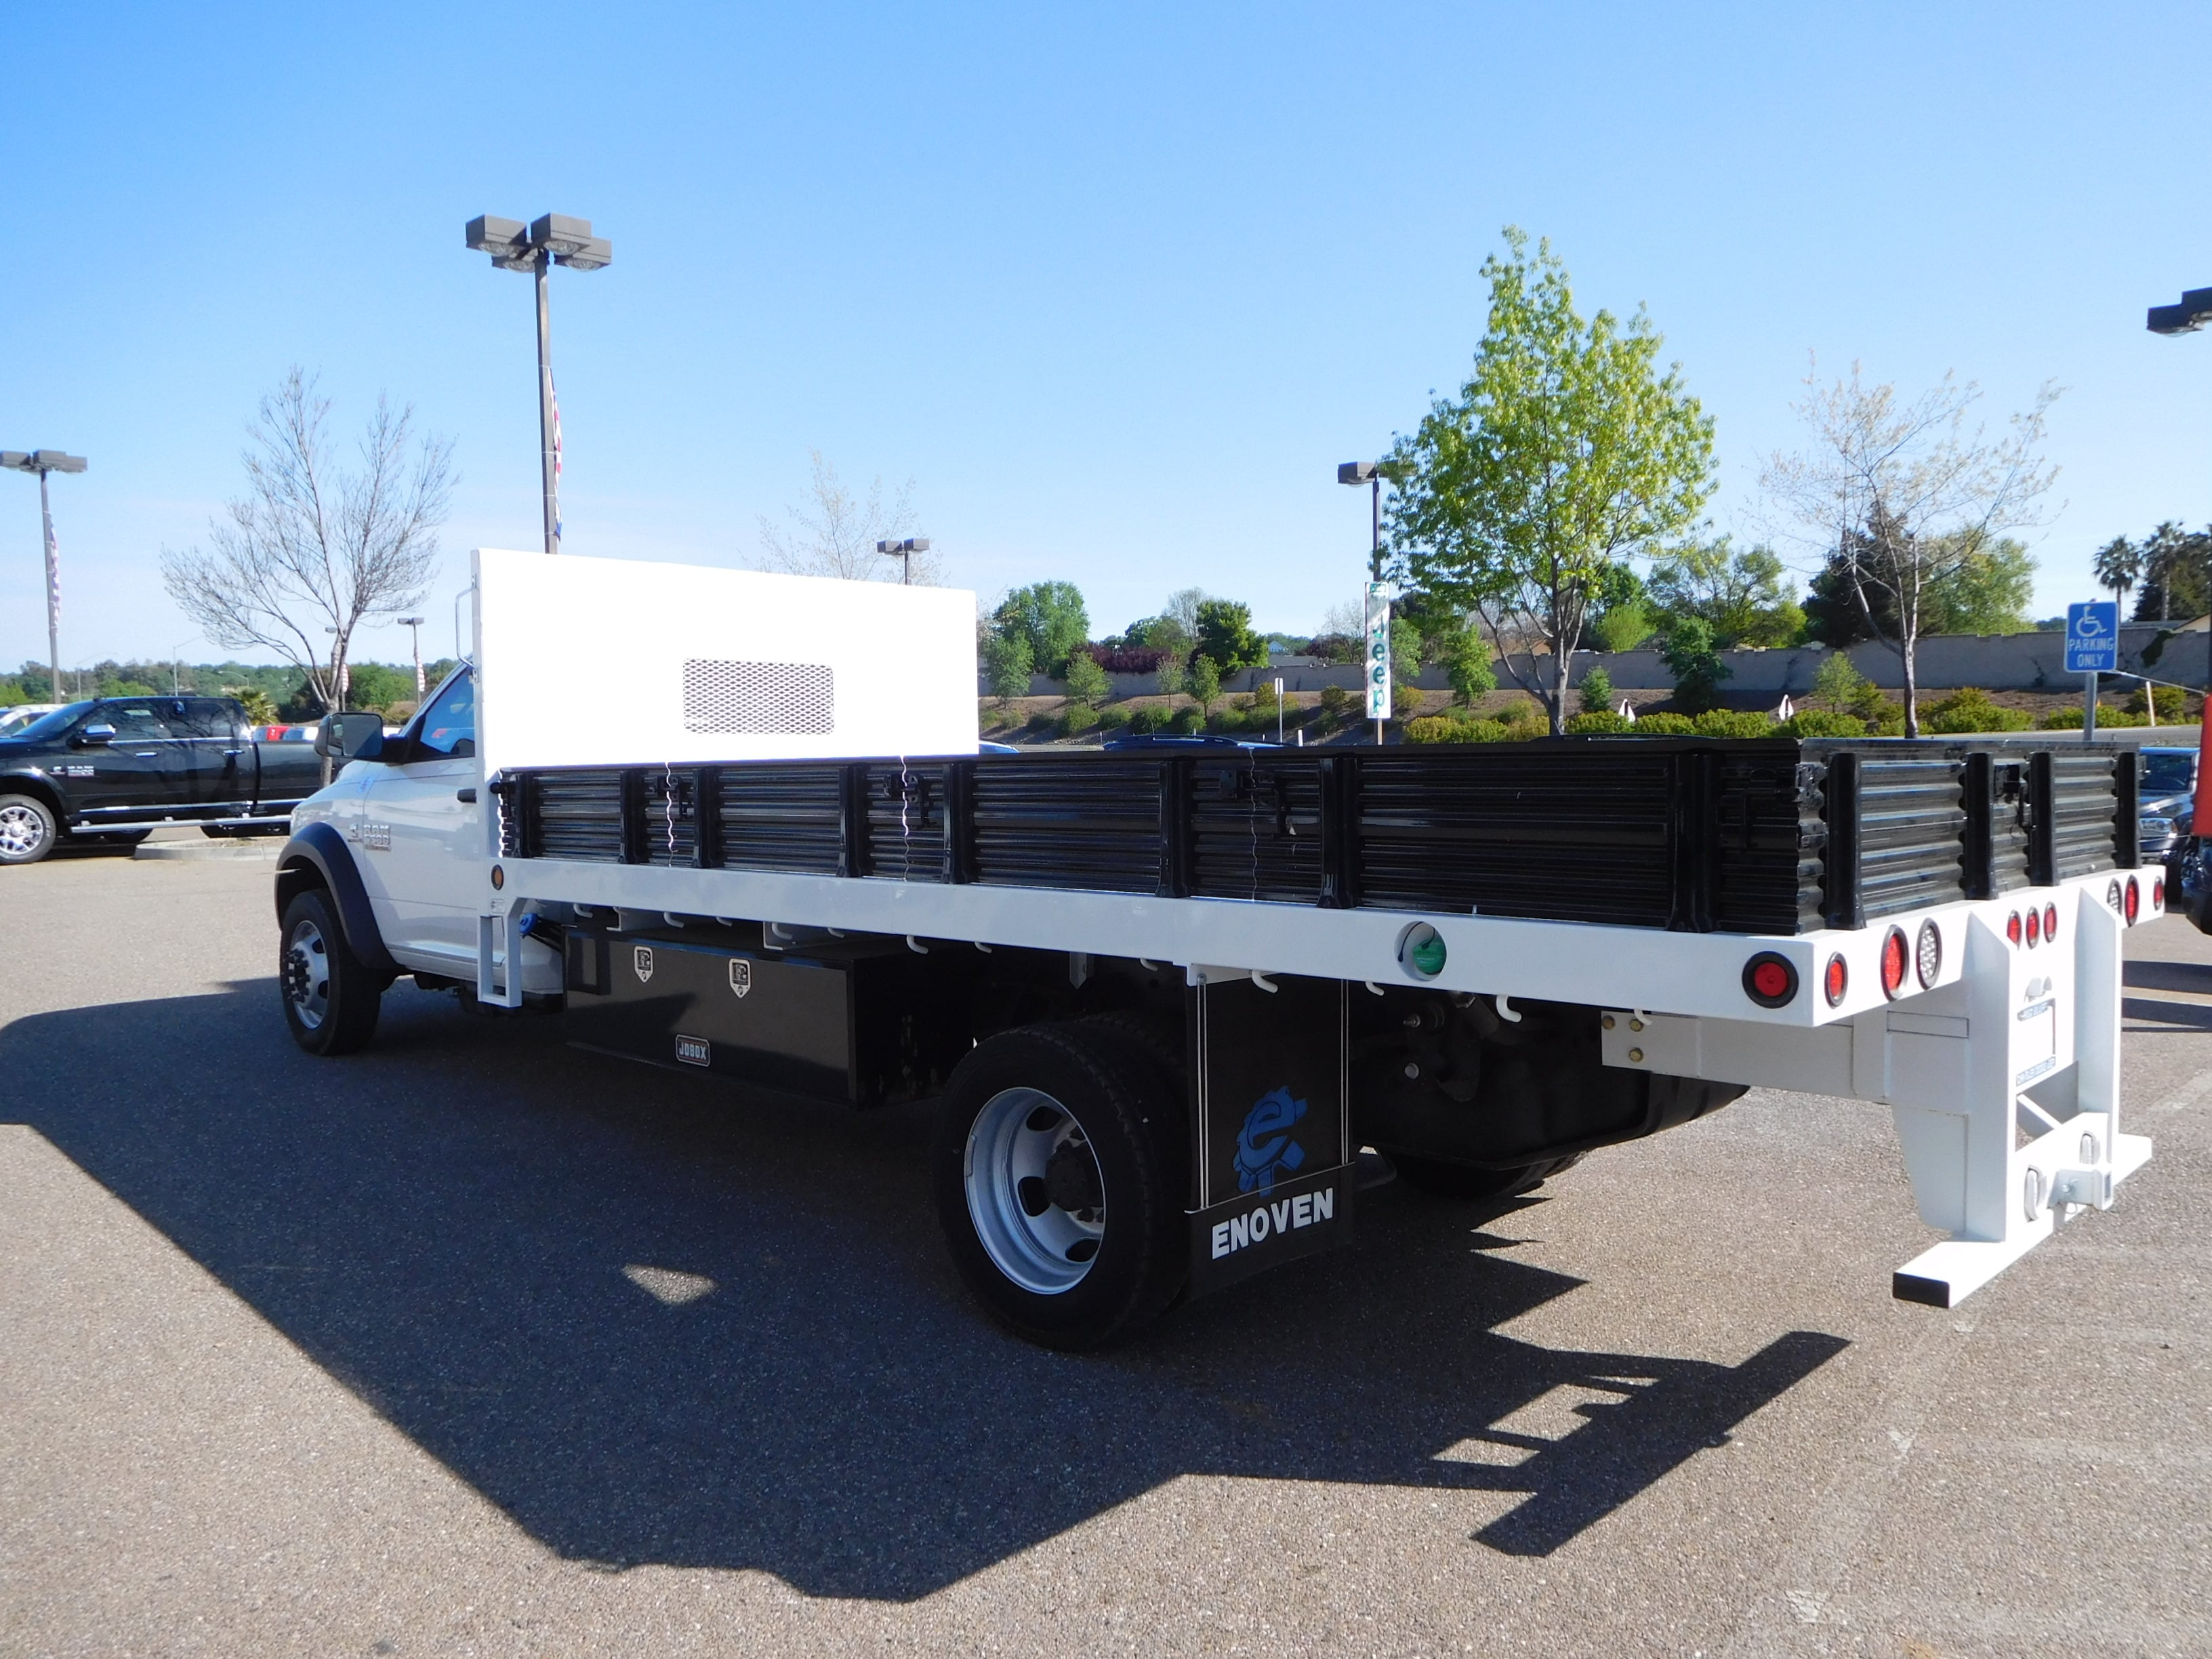 2016 Ram 5500 Regular Cab DRW 4x4,  Enoven Truck Body & Equipment Platform Body #13702 - photo 7